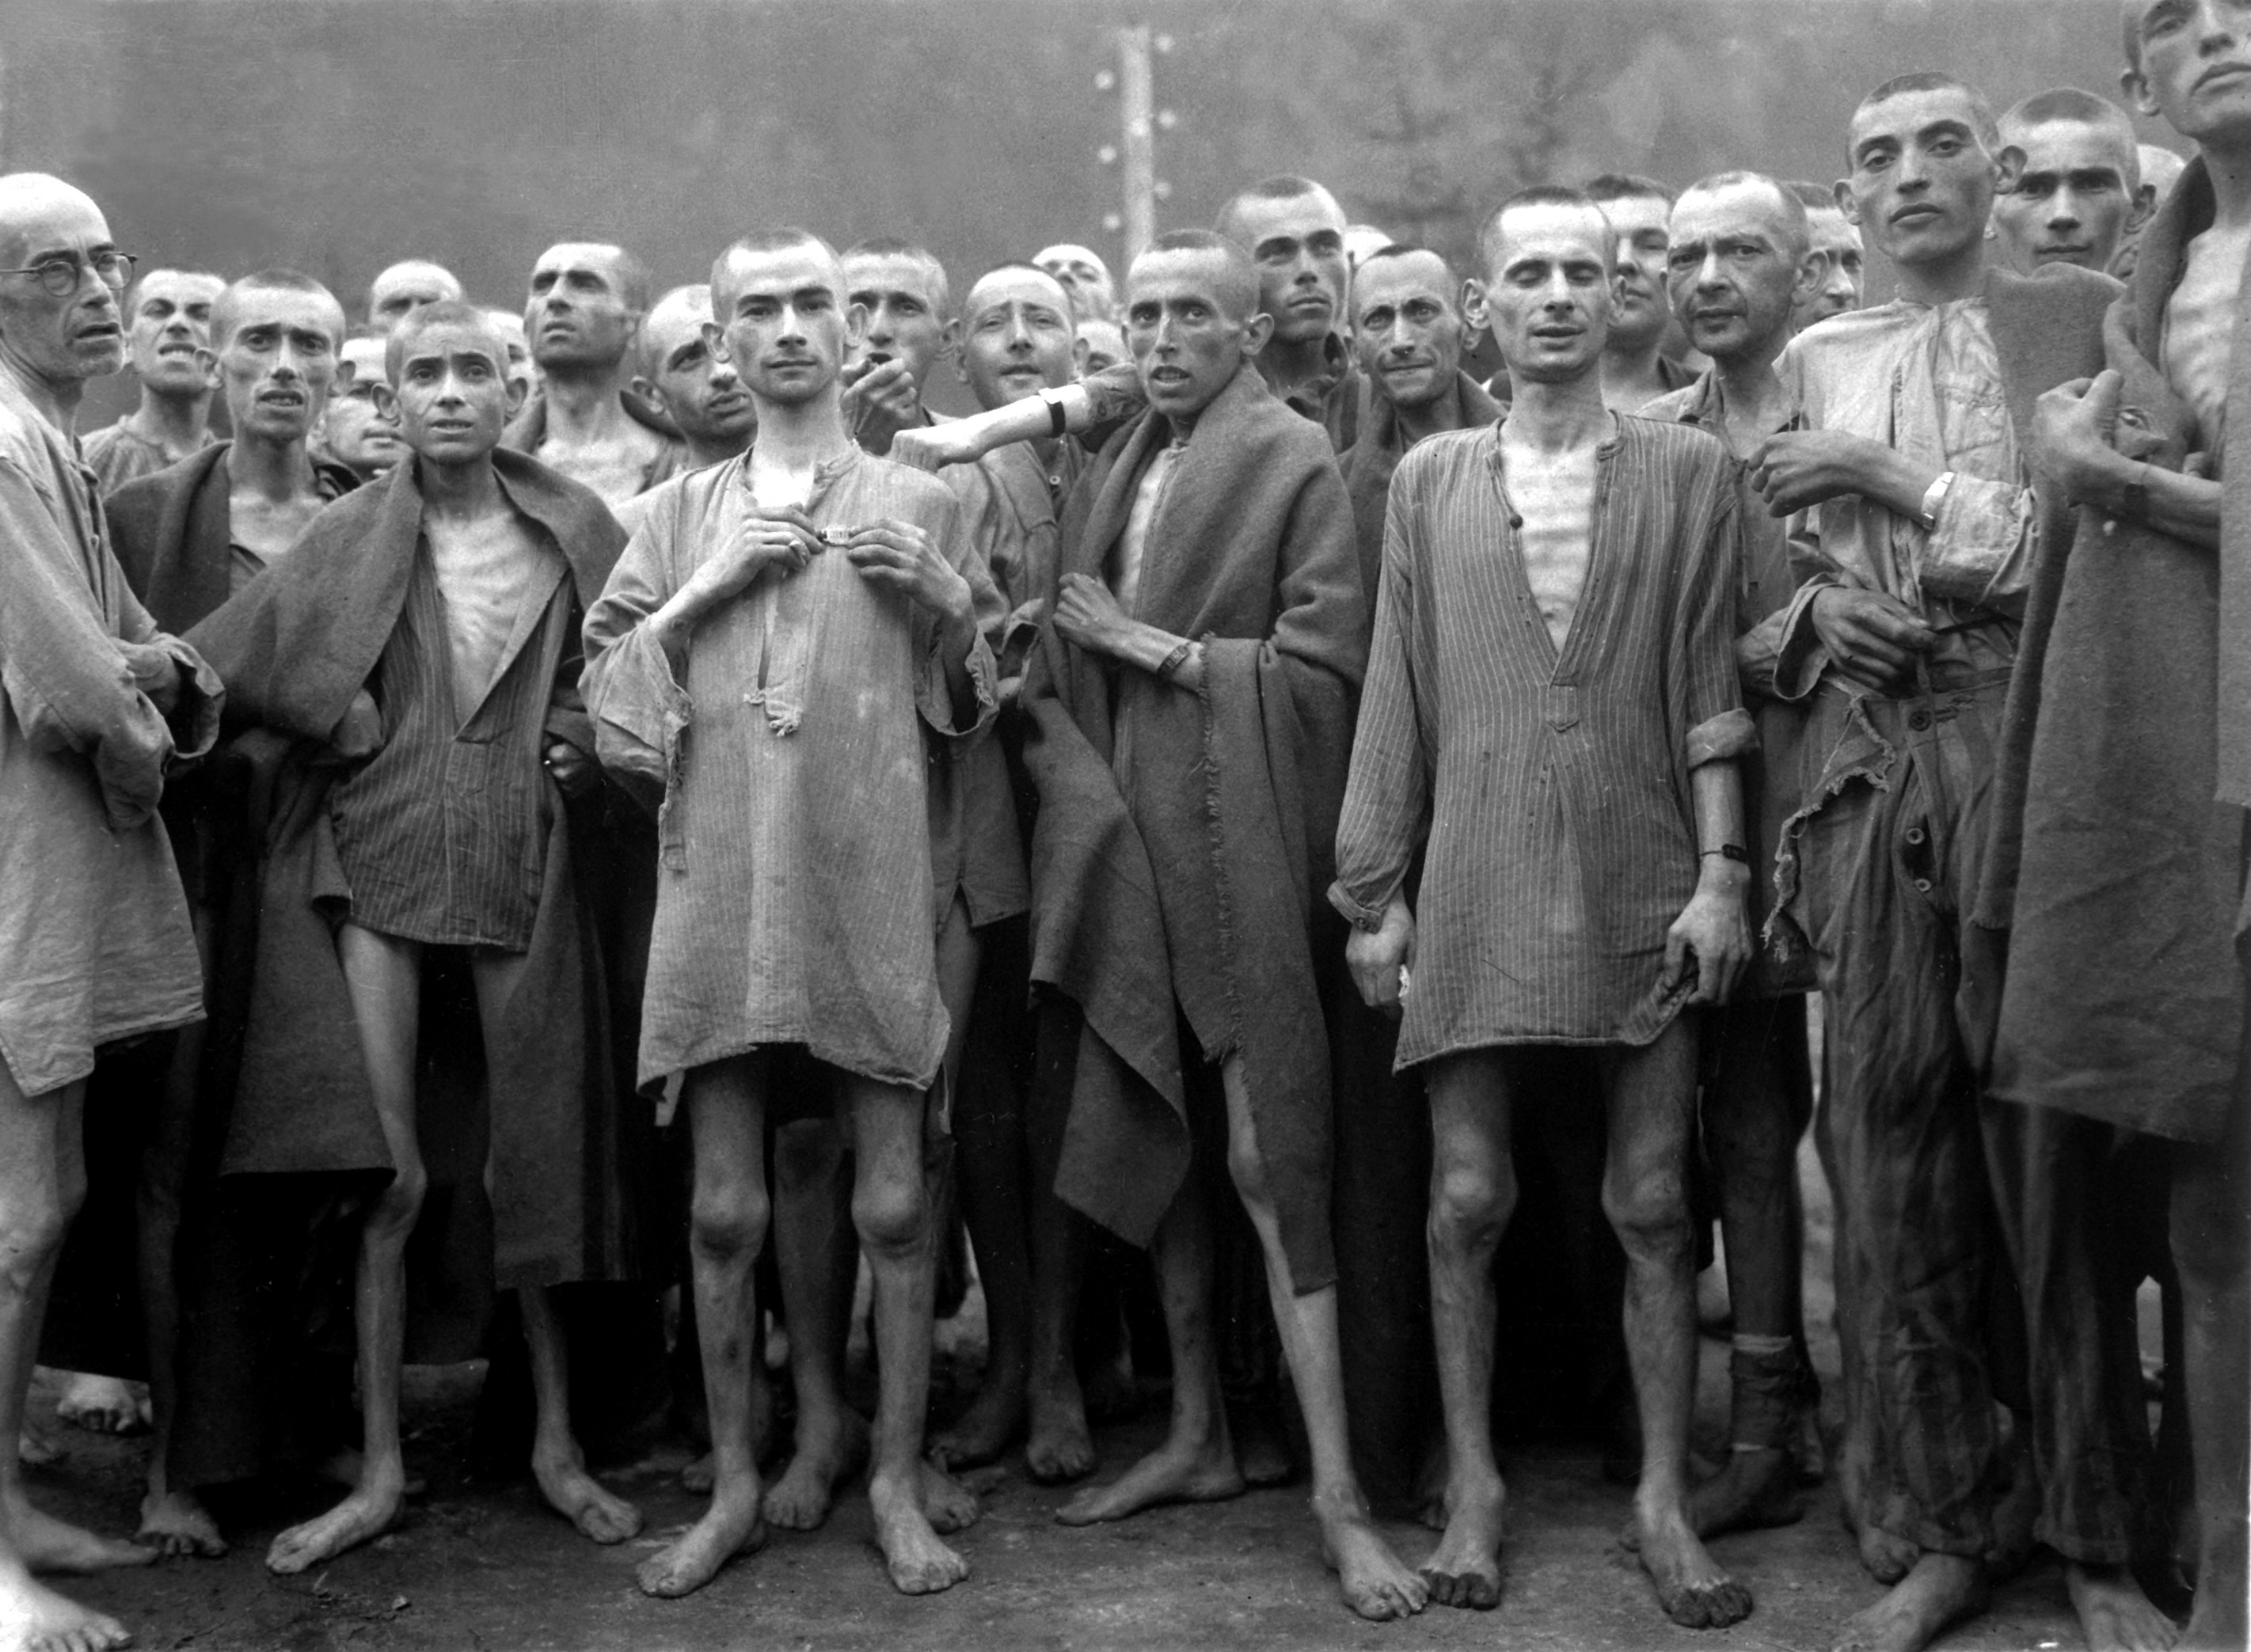 Story behind the photo   GRAPHIC Ebensee_concentration_camp_prisoners_1945